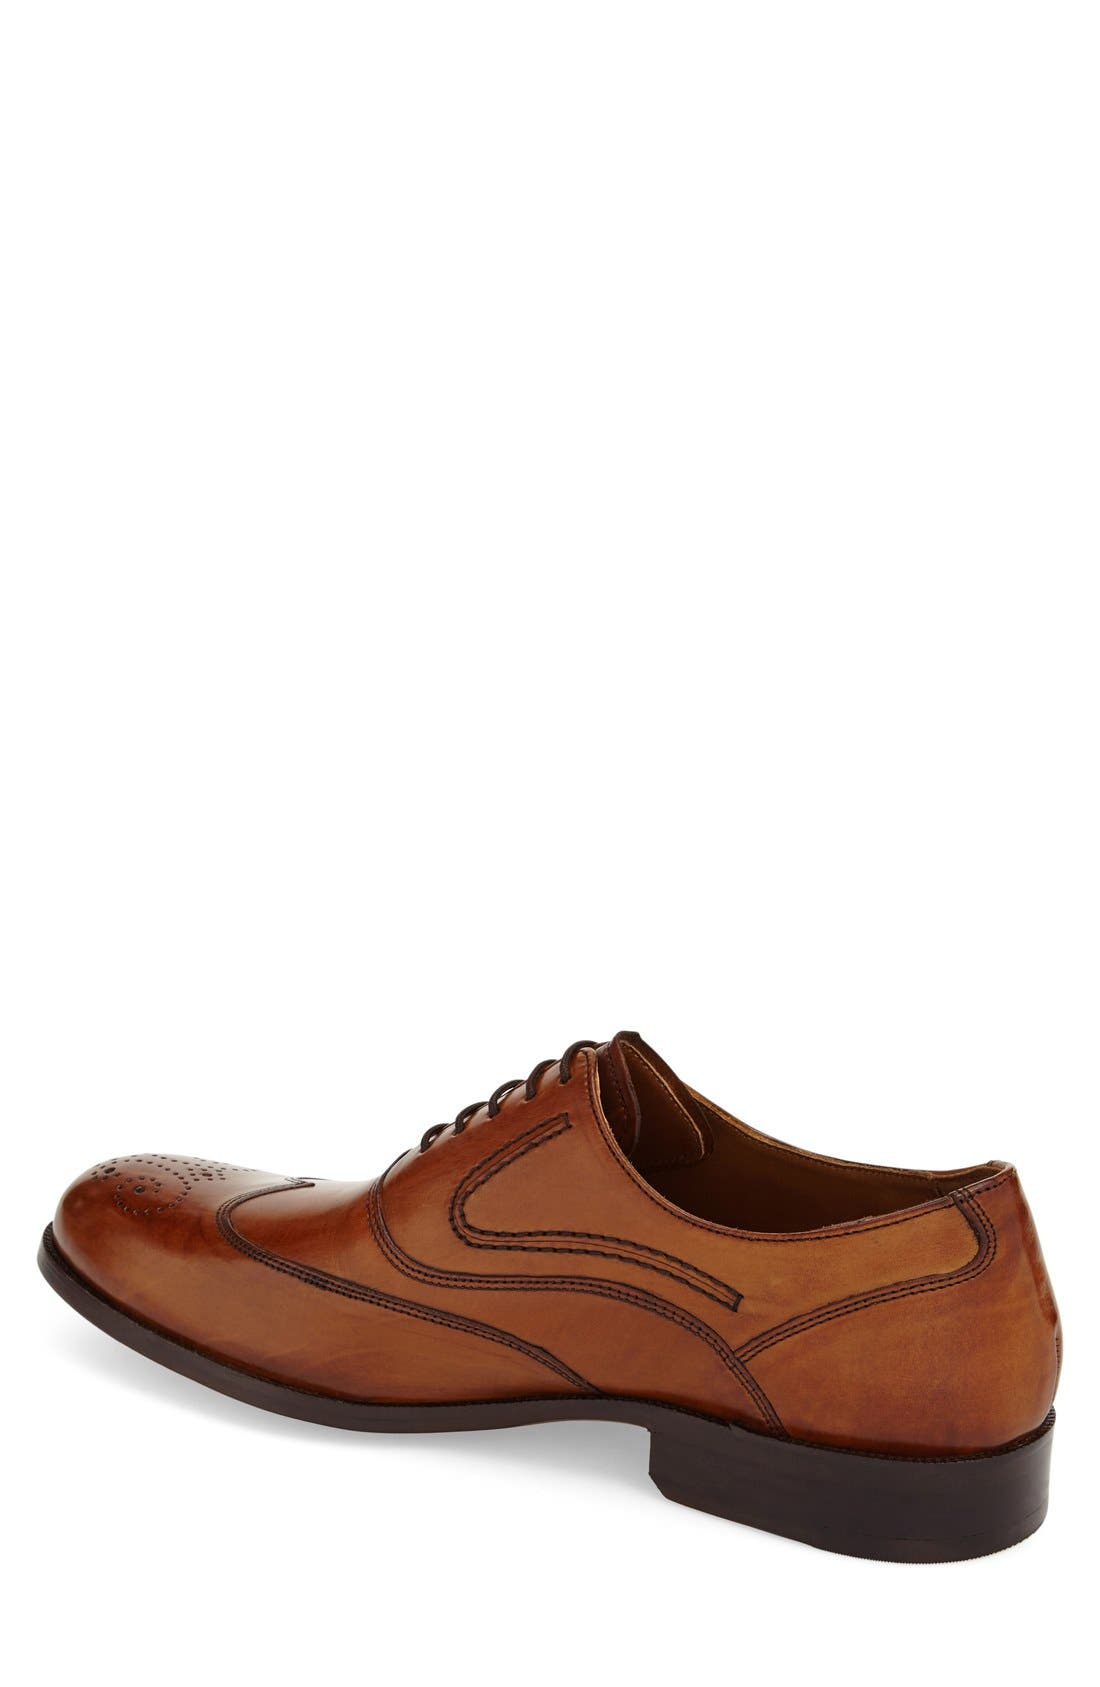 'Stratton' Wingtip Oxford,                             Alternate thumbnail 2, color,                             240